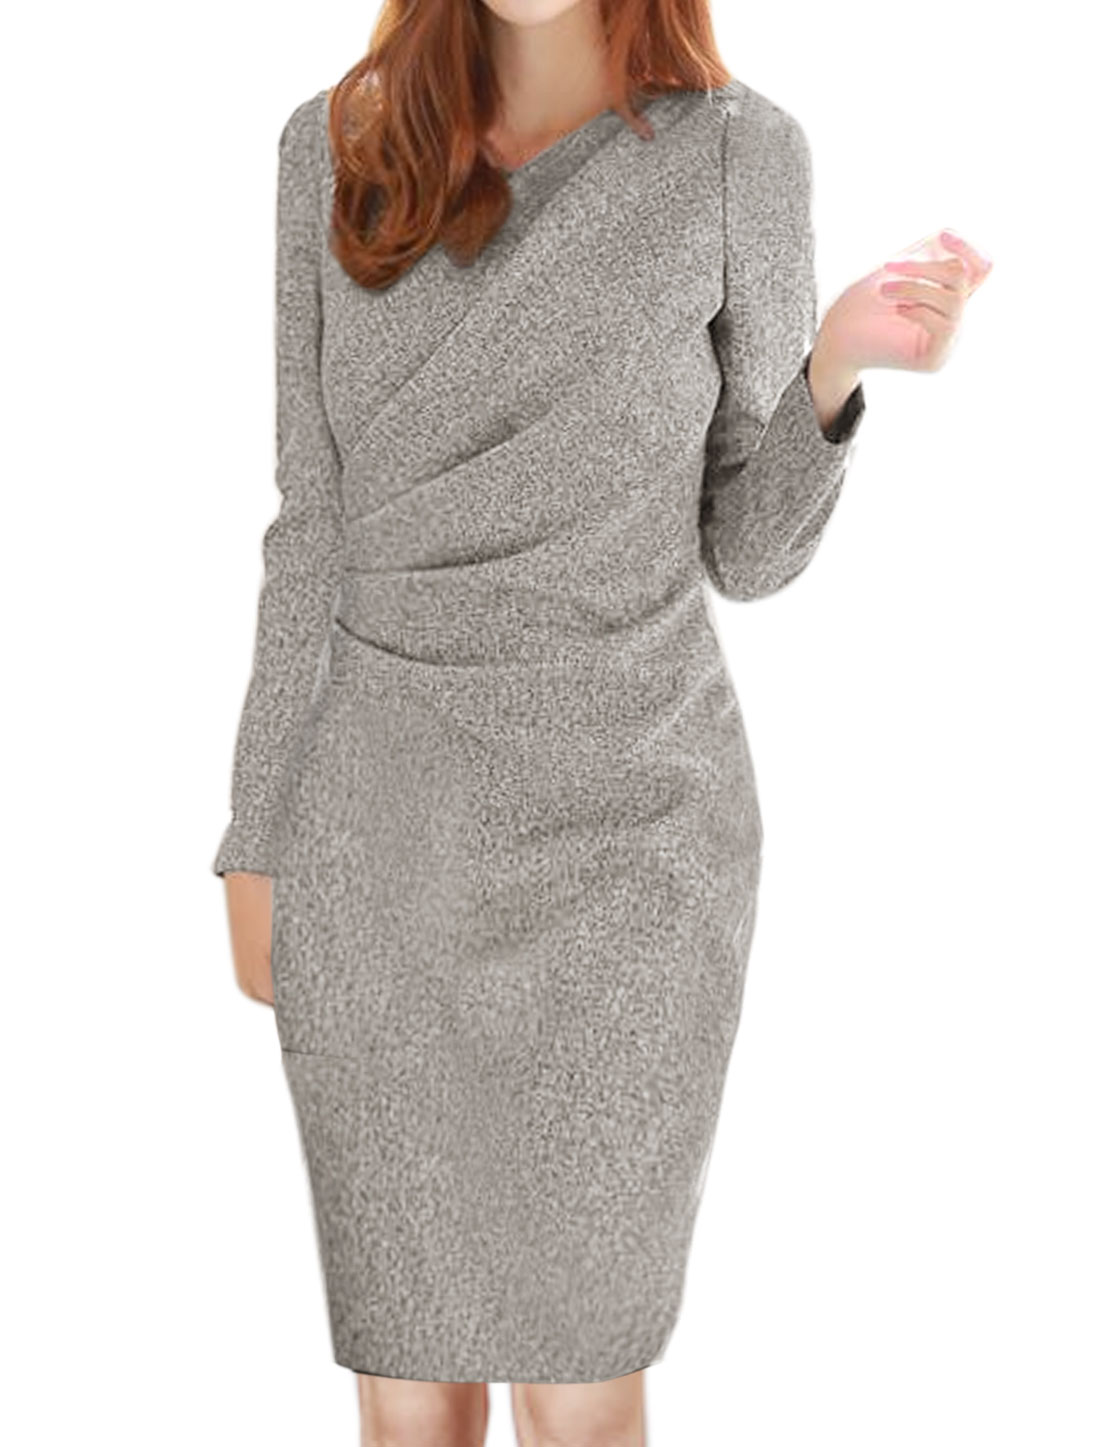 Ladies Long Sleeves Slim Fit Ruched Sheath Dress Gray S